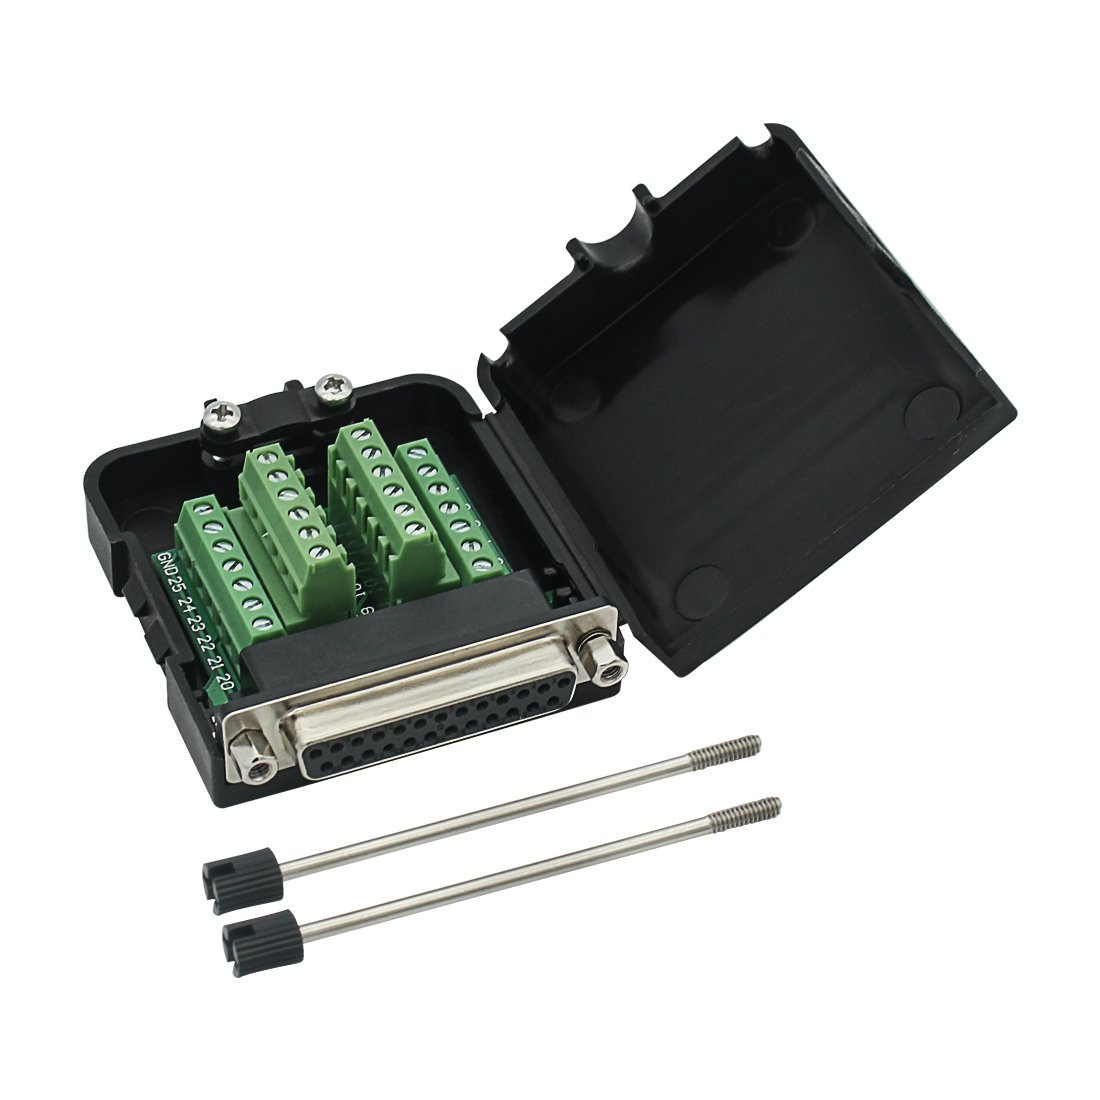 Twinkle Bay DB25 Connector to Wiring Terminal Db25 Breakout Board Solder-Free Male Adapter with Case